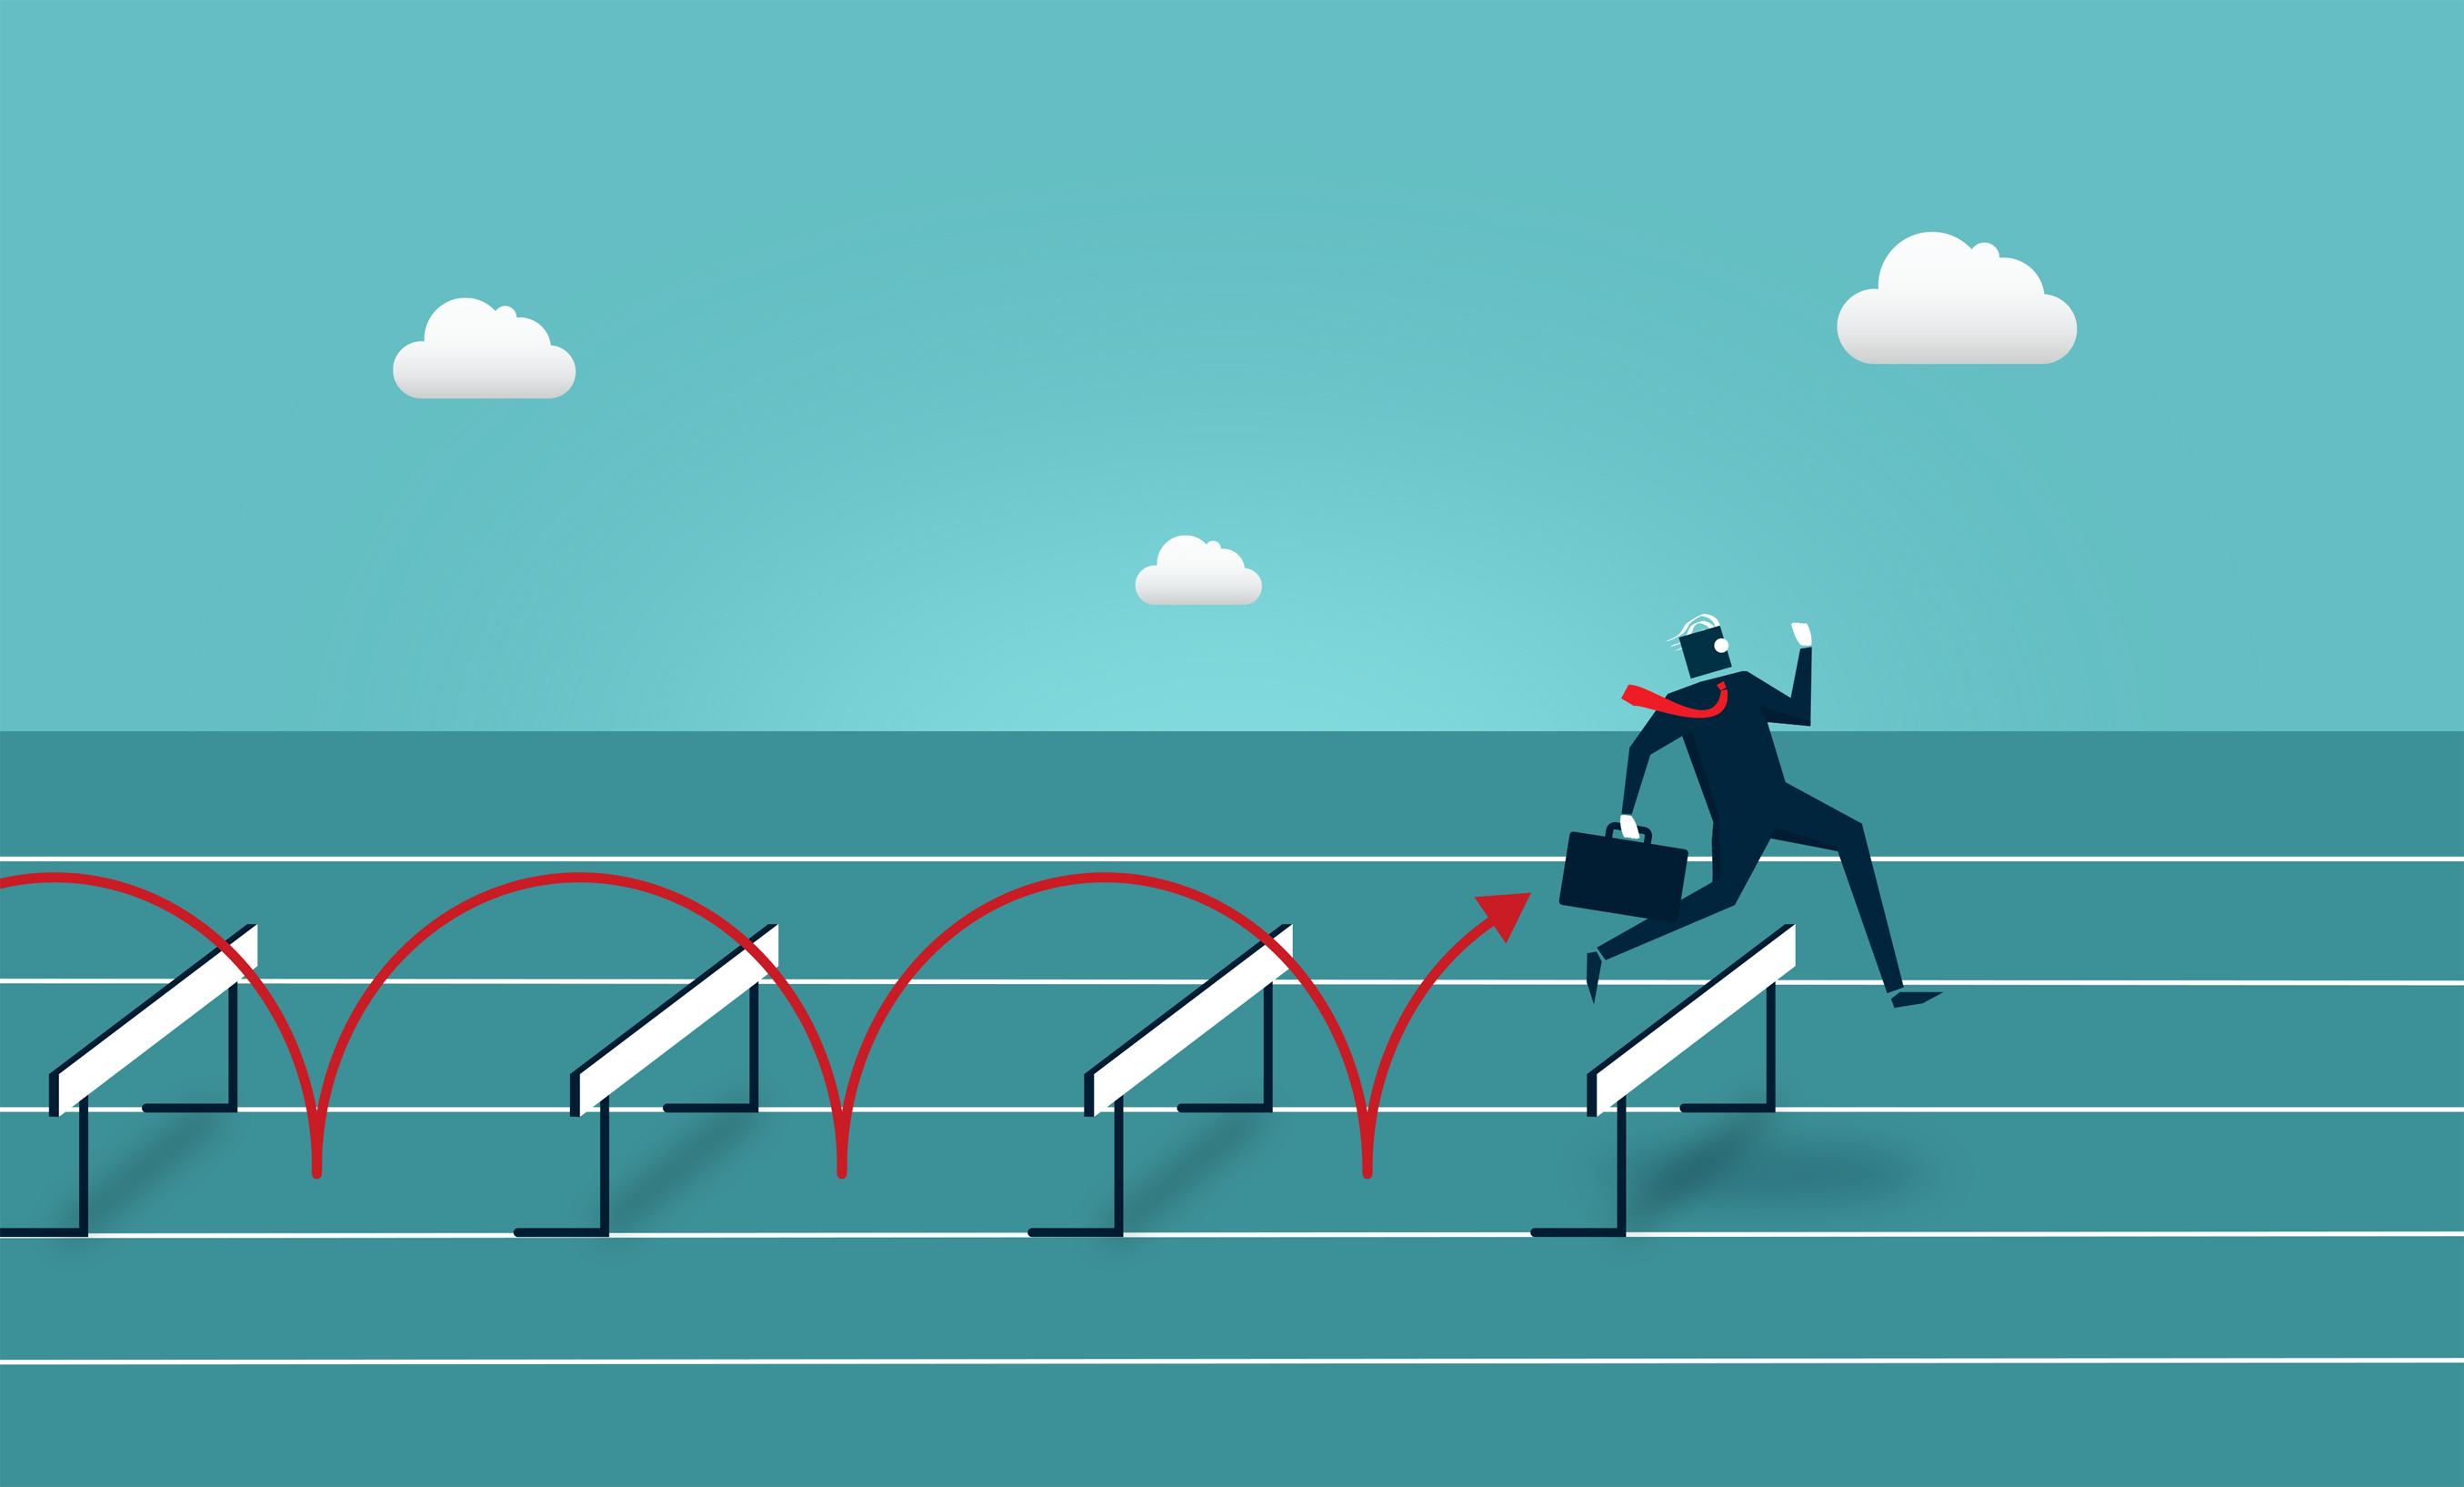 Businessman jumping over hurdles - overcoming barriers photo